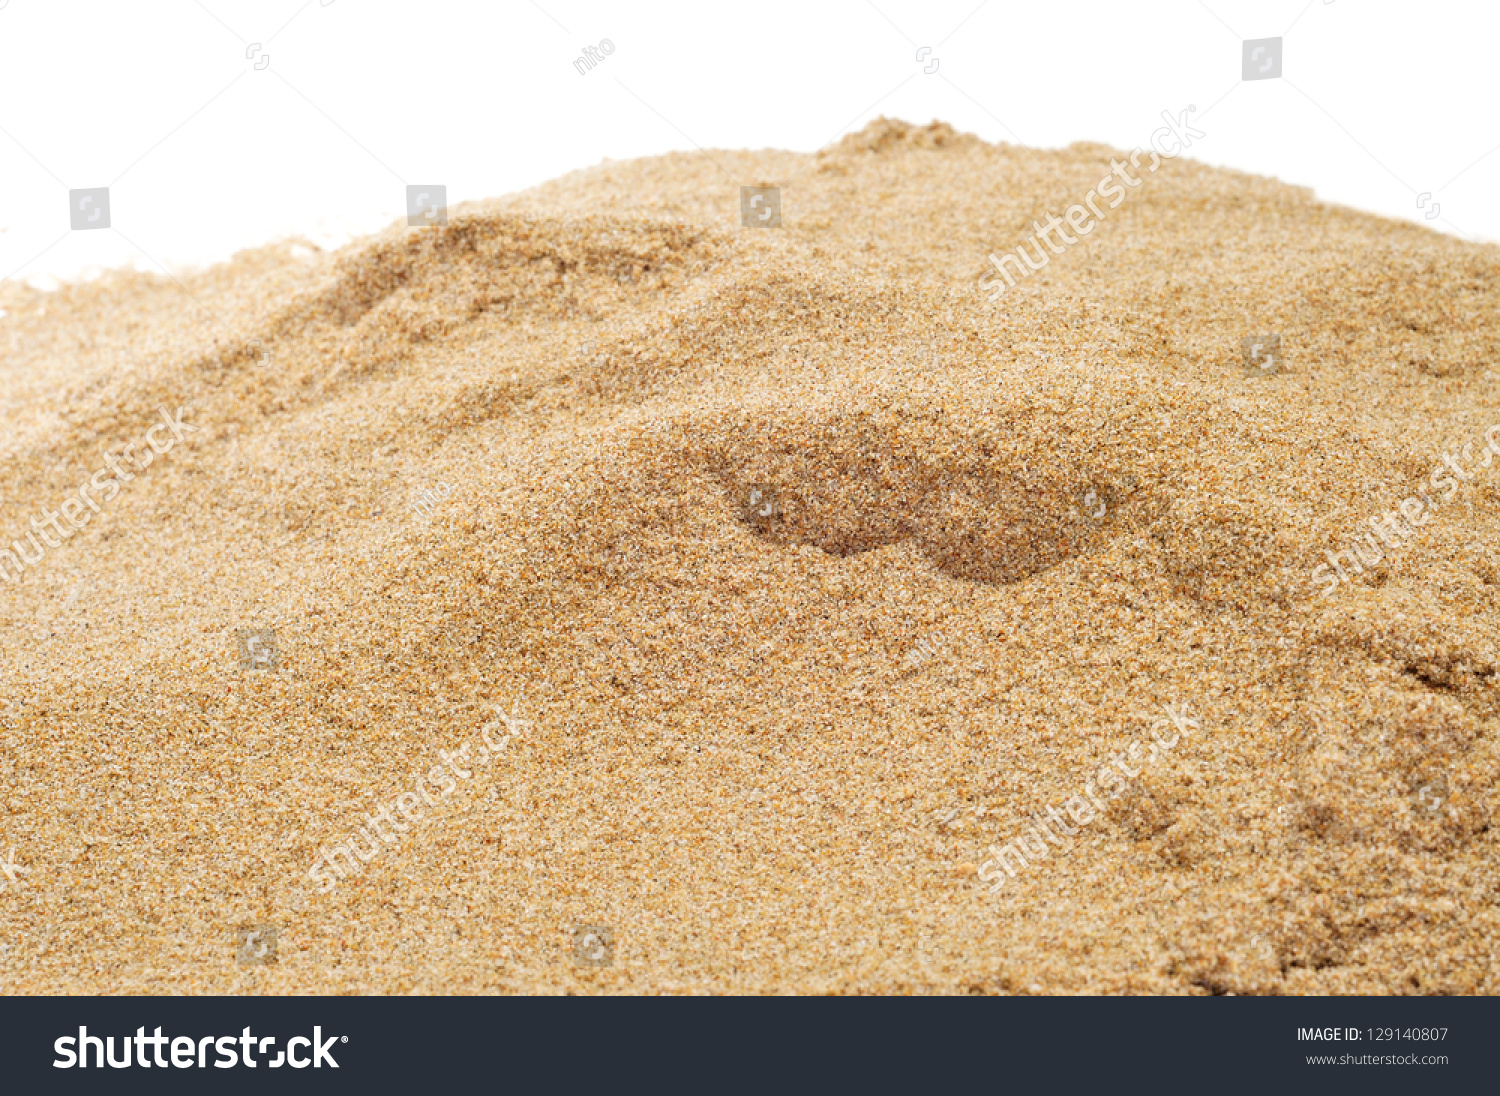 Closeup Of A Pile Of Sand On A White Background Stock ...